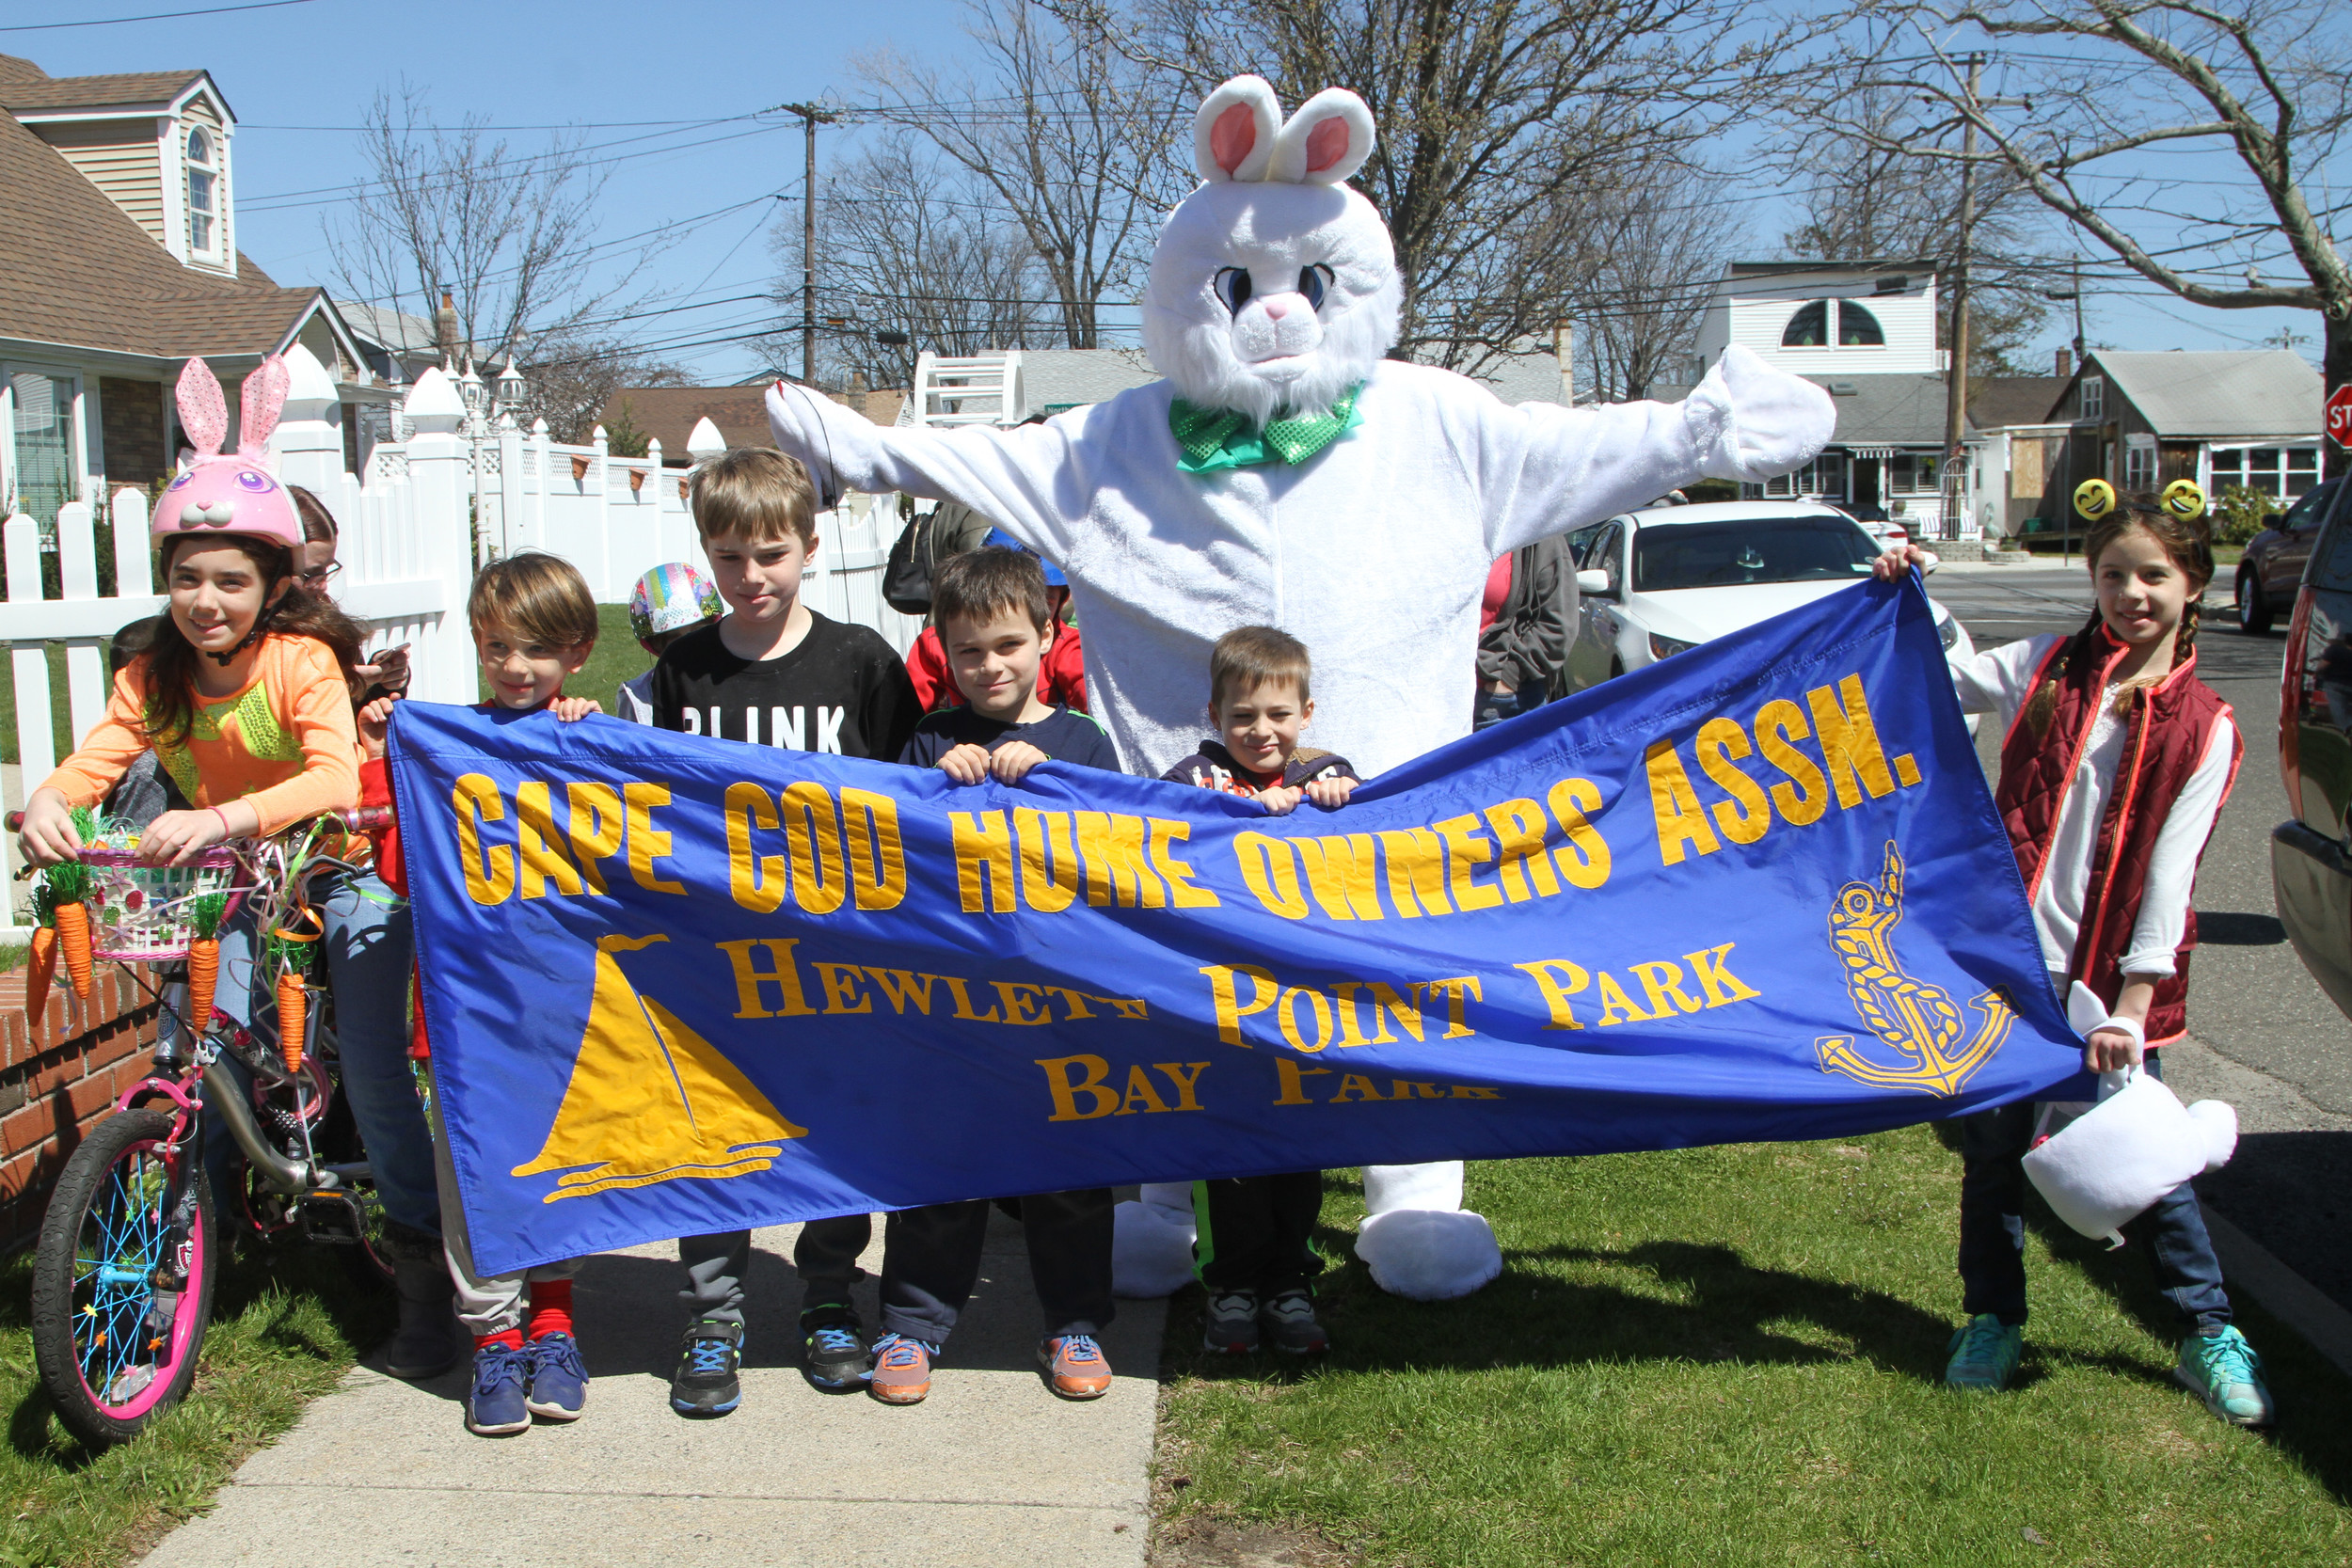 At the annual Cape Cod Homeowners Association Easter egg hunt, a parade was held for the very first time and led by the Easter Bunny.